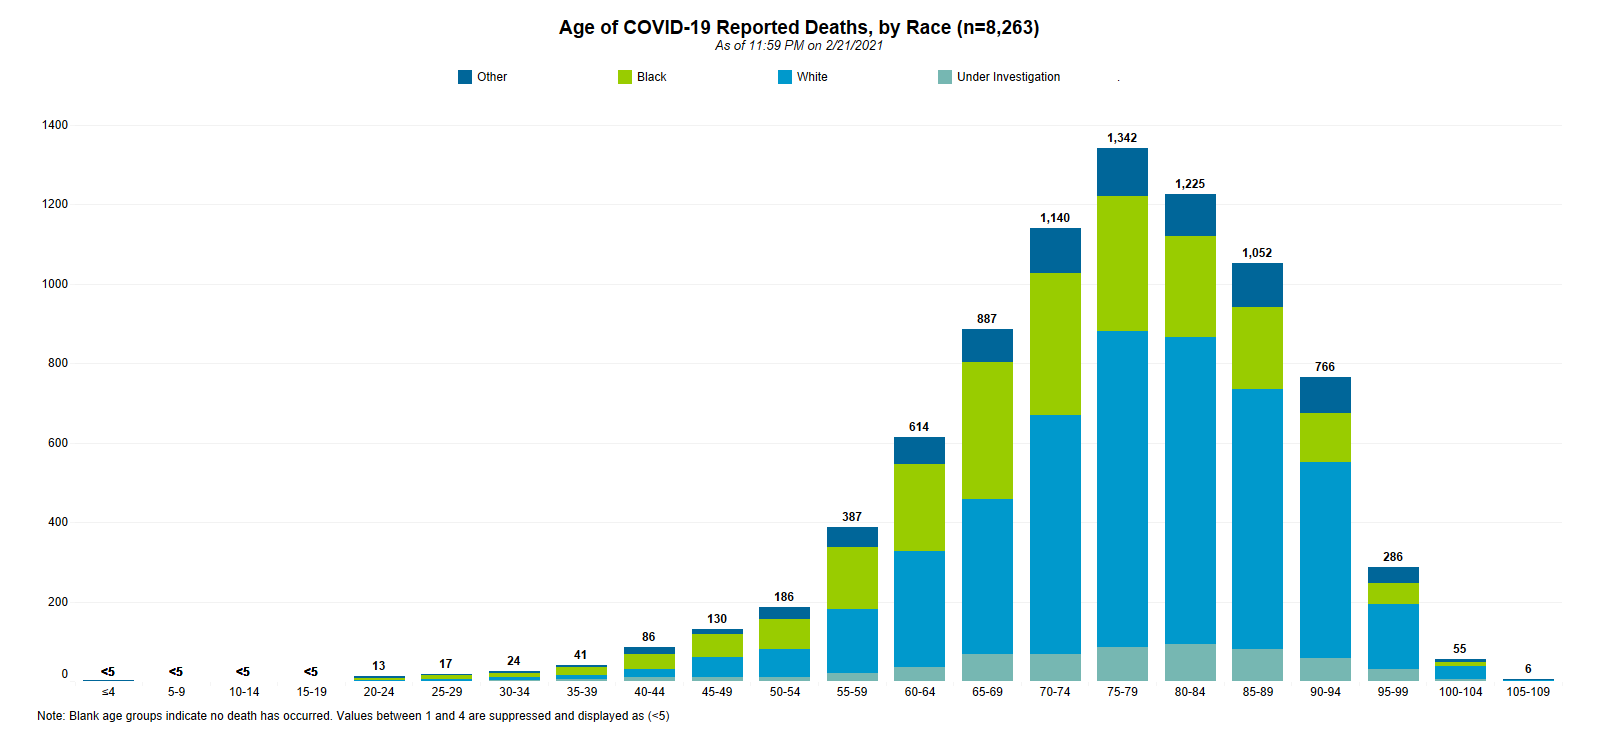 Graphic of COVID-19 Reported Deaths by Age and Race 02.23.2021